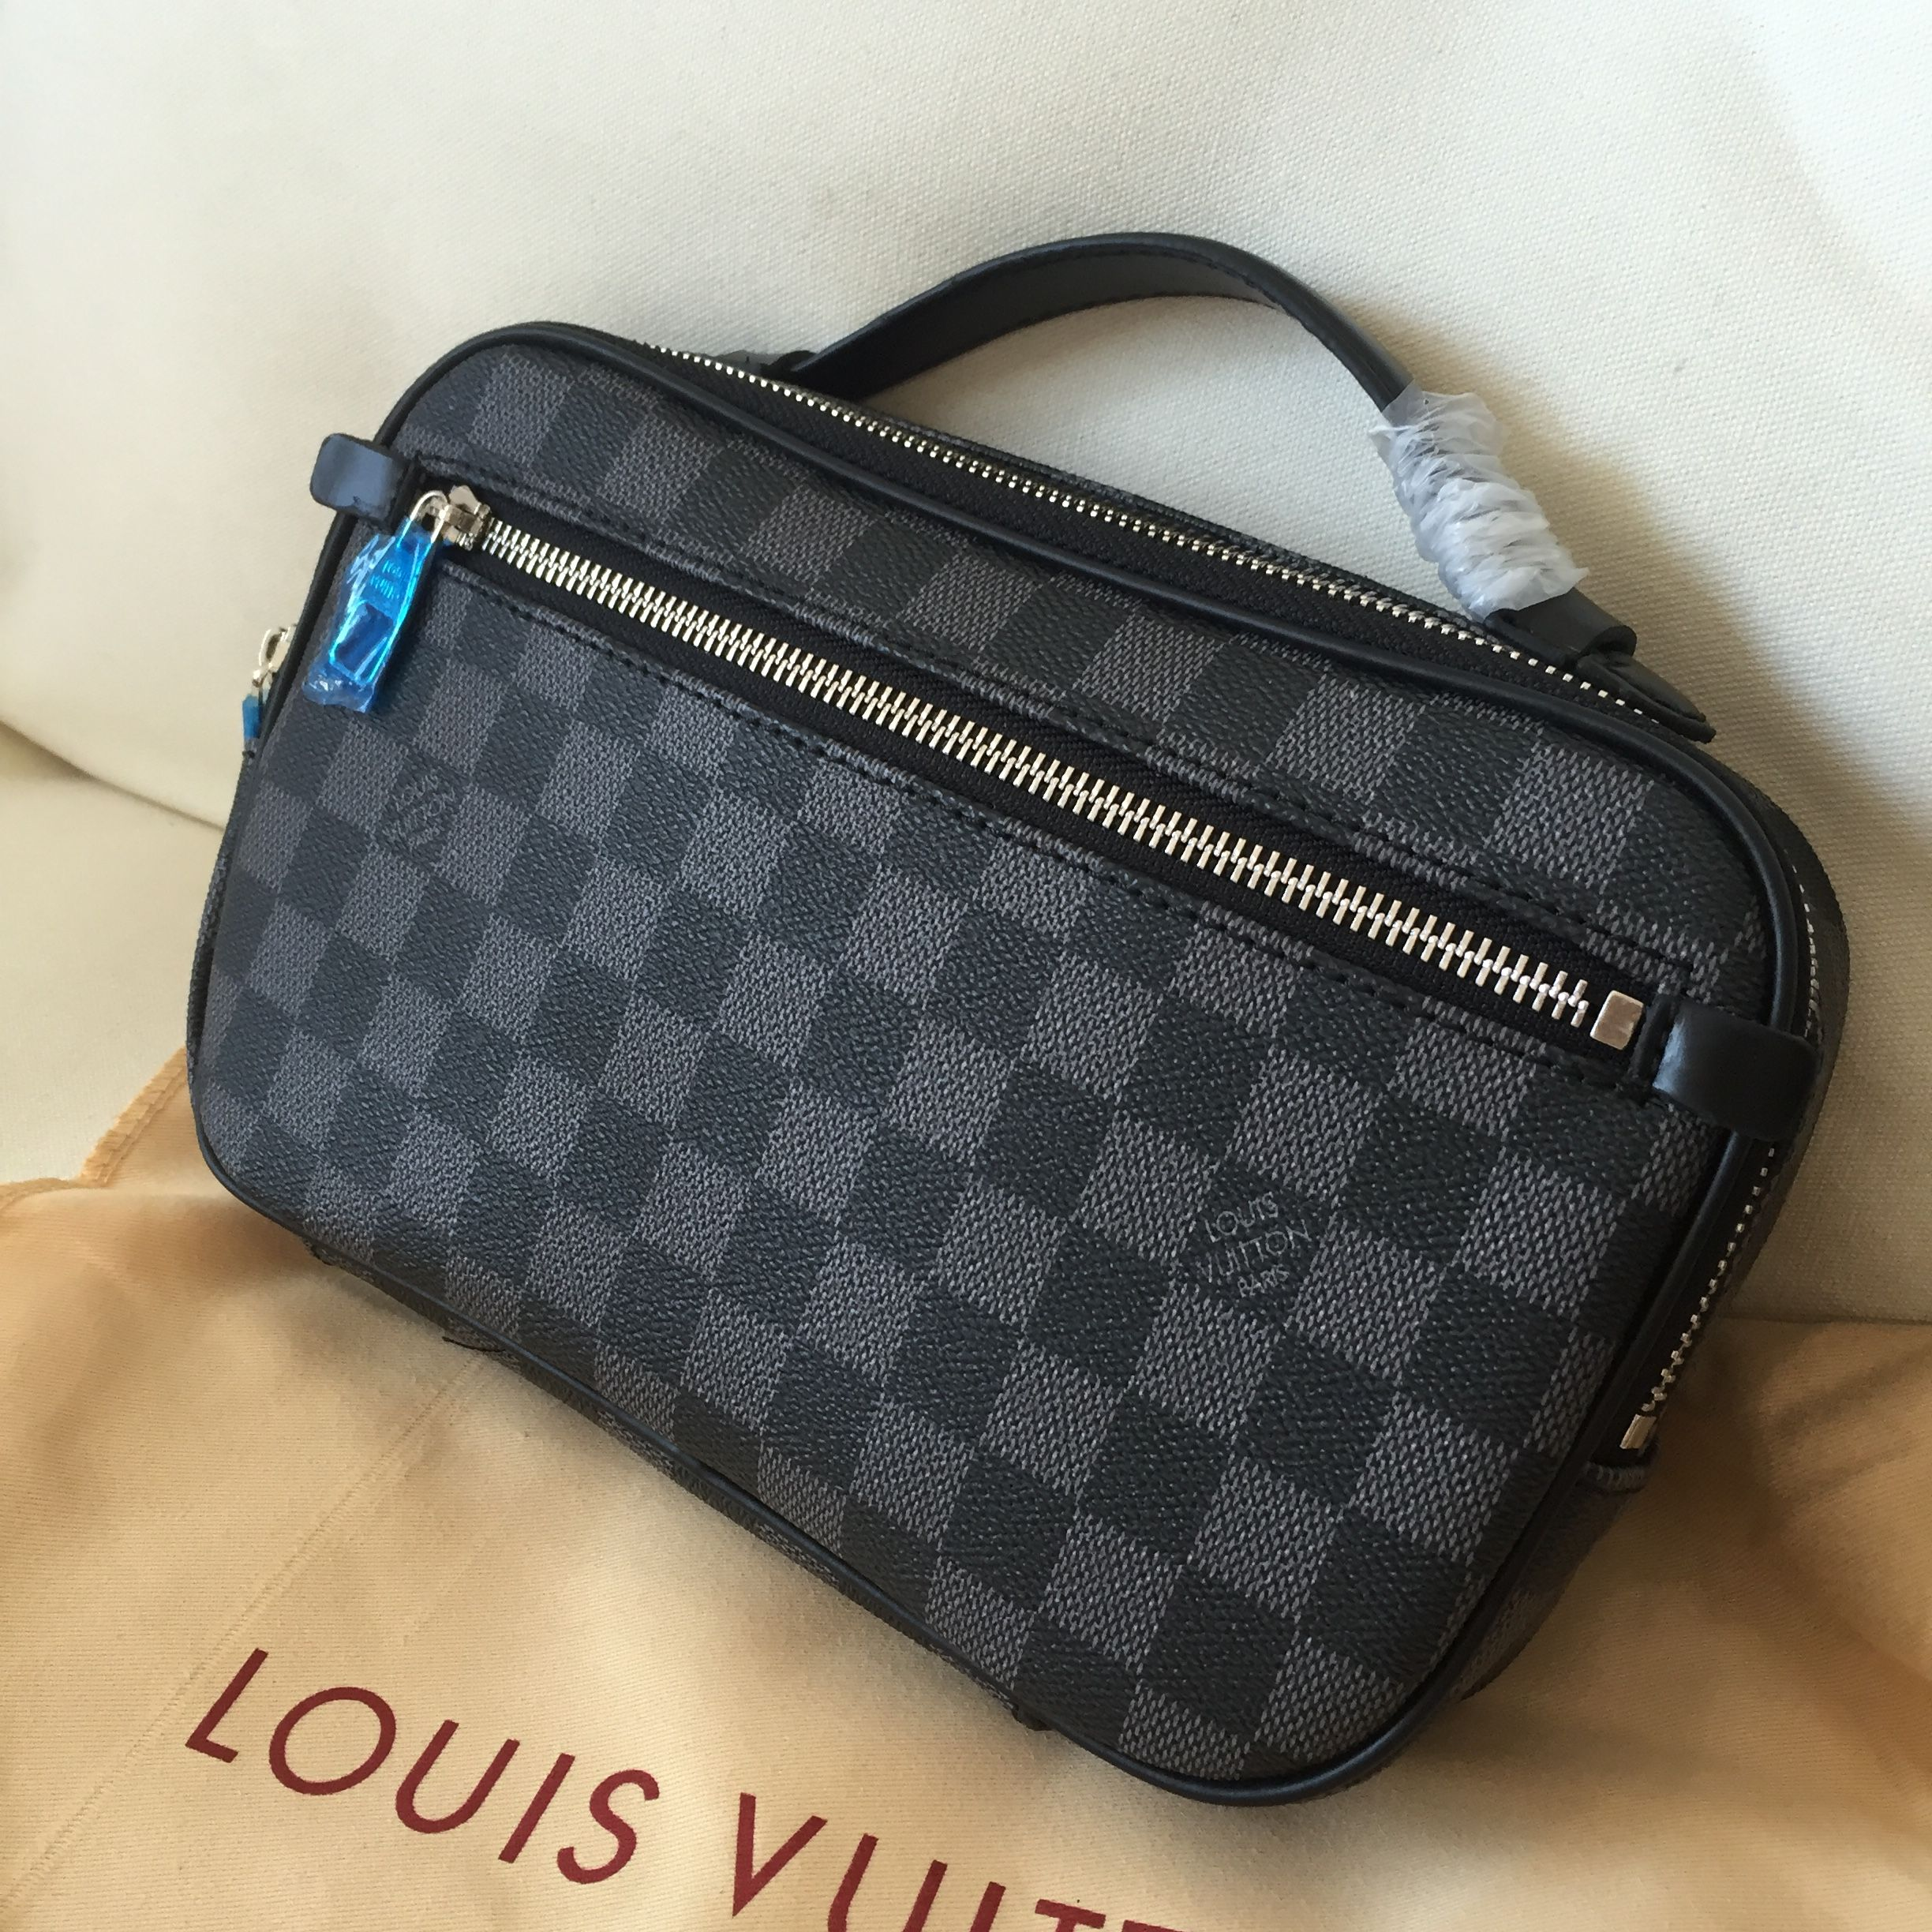 495b373d9009 Louis Vuitton Lv man clutch bag Damier graphite